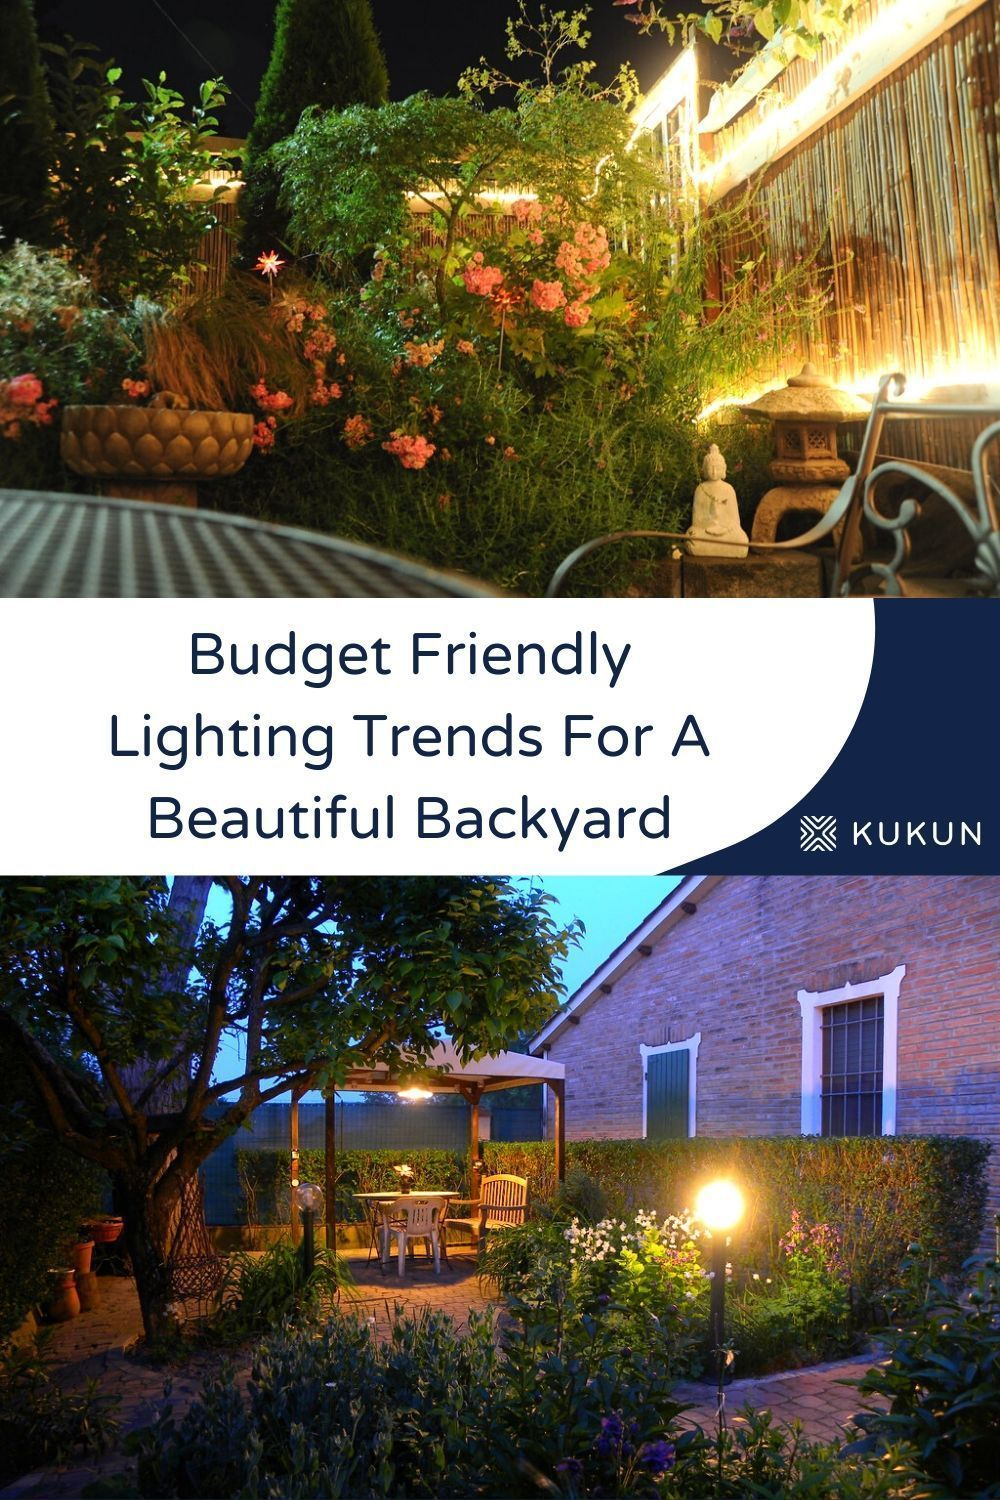 Backyard Lighting Trends To Try On A Budget In 2020 With Images Backyard Design